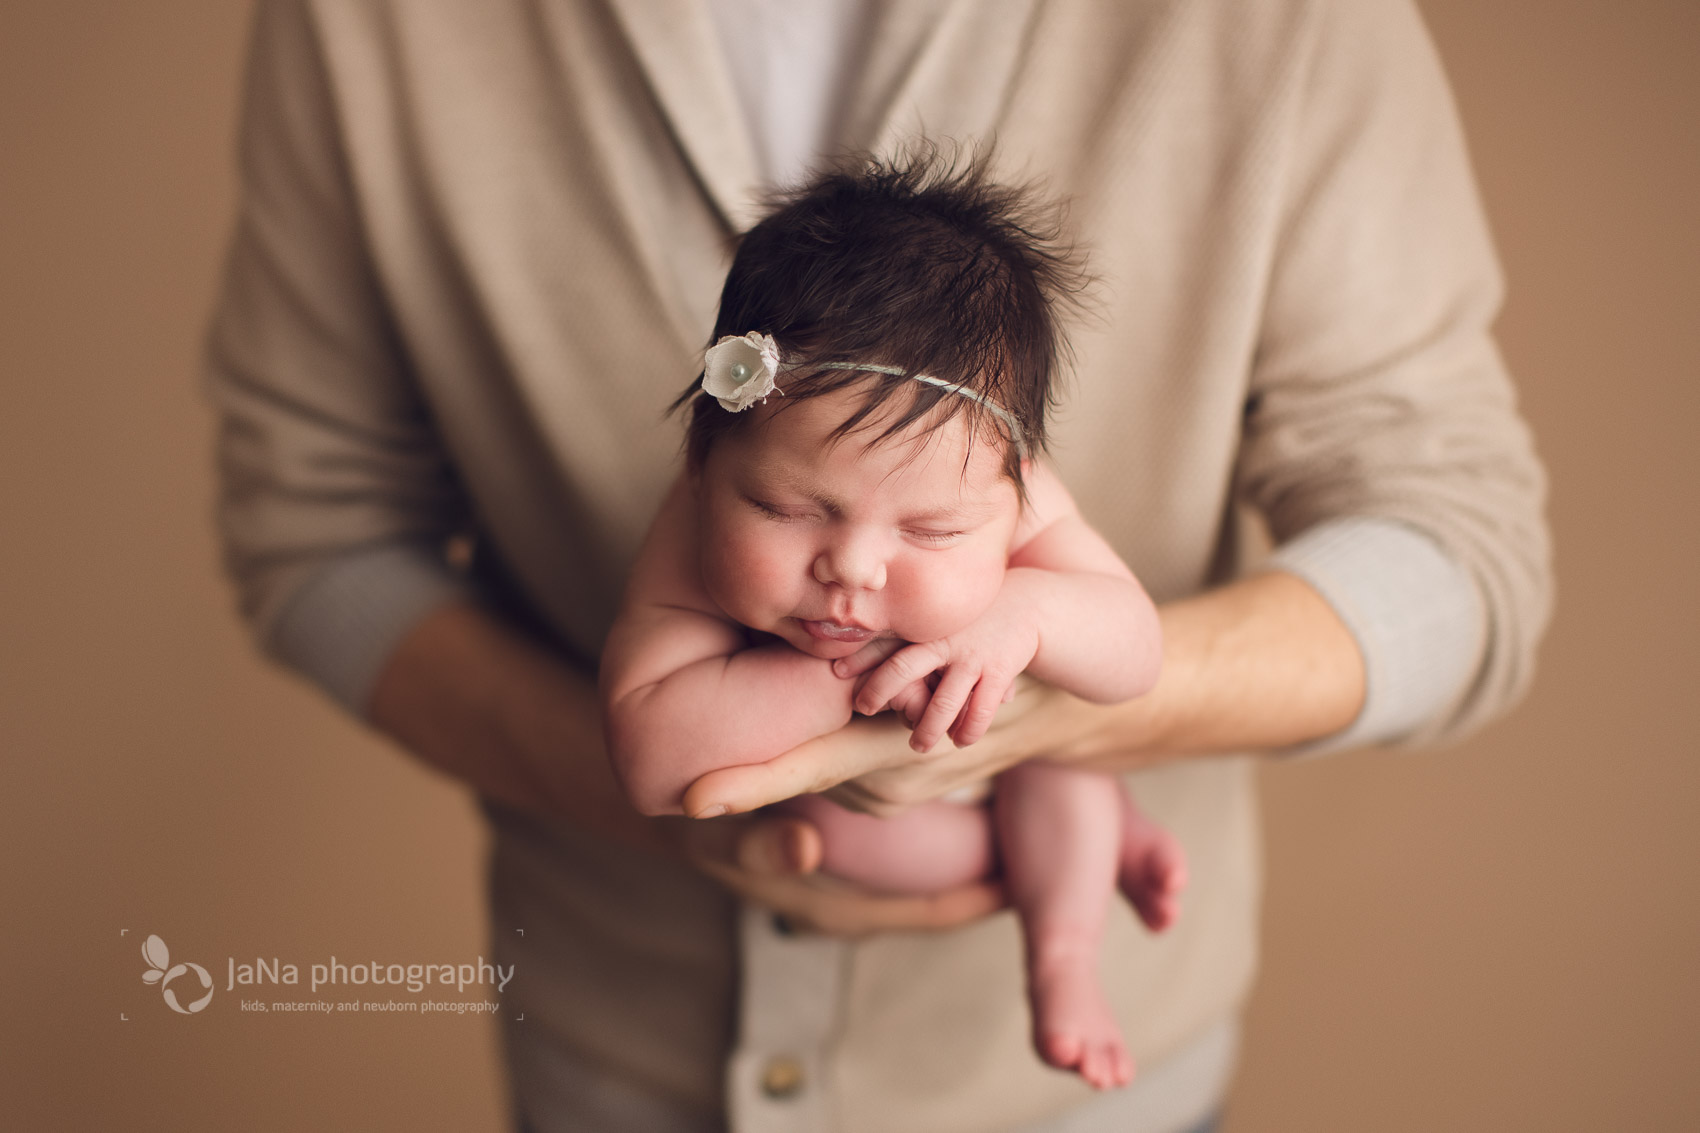 Vancouver, Burnaby newborn photography - Ana and dad